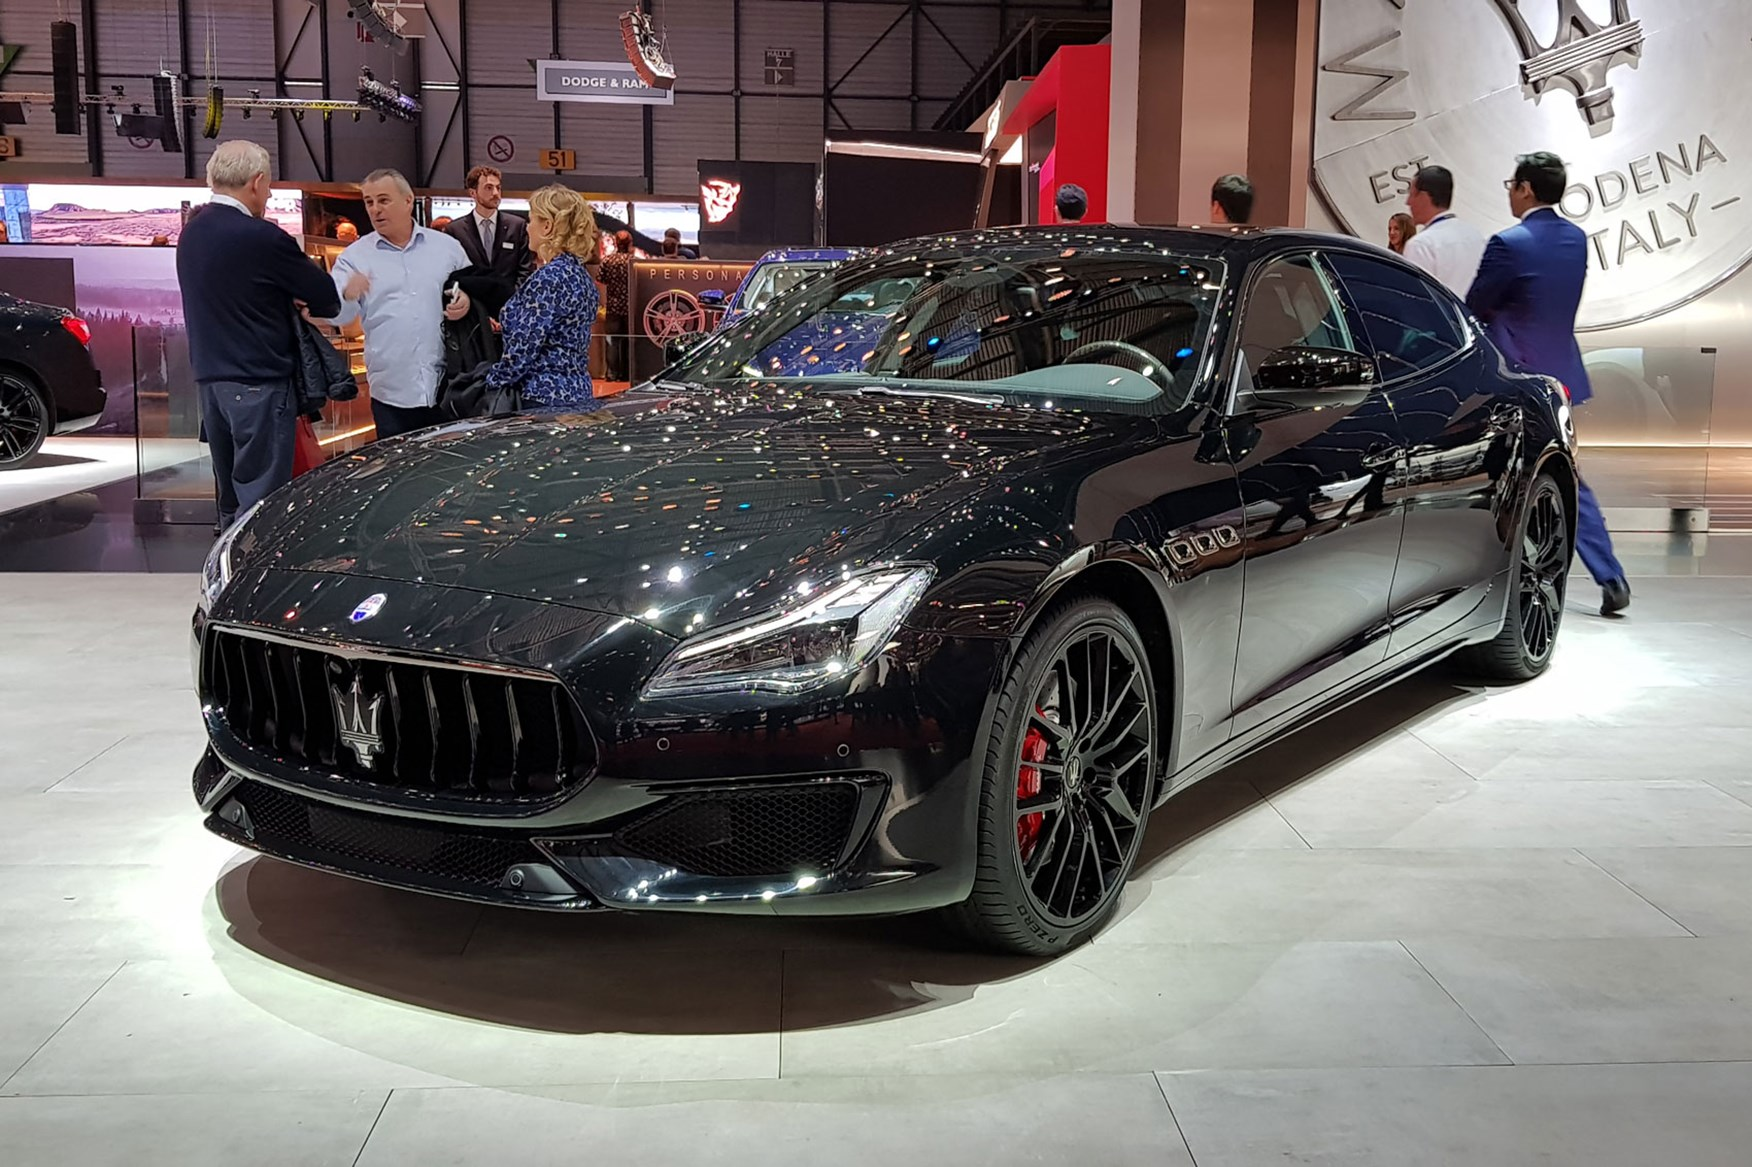 Murdered-out Masers: Maserati Nerissimo editions are here ...